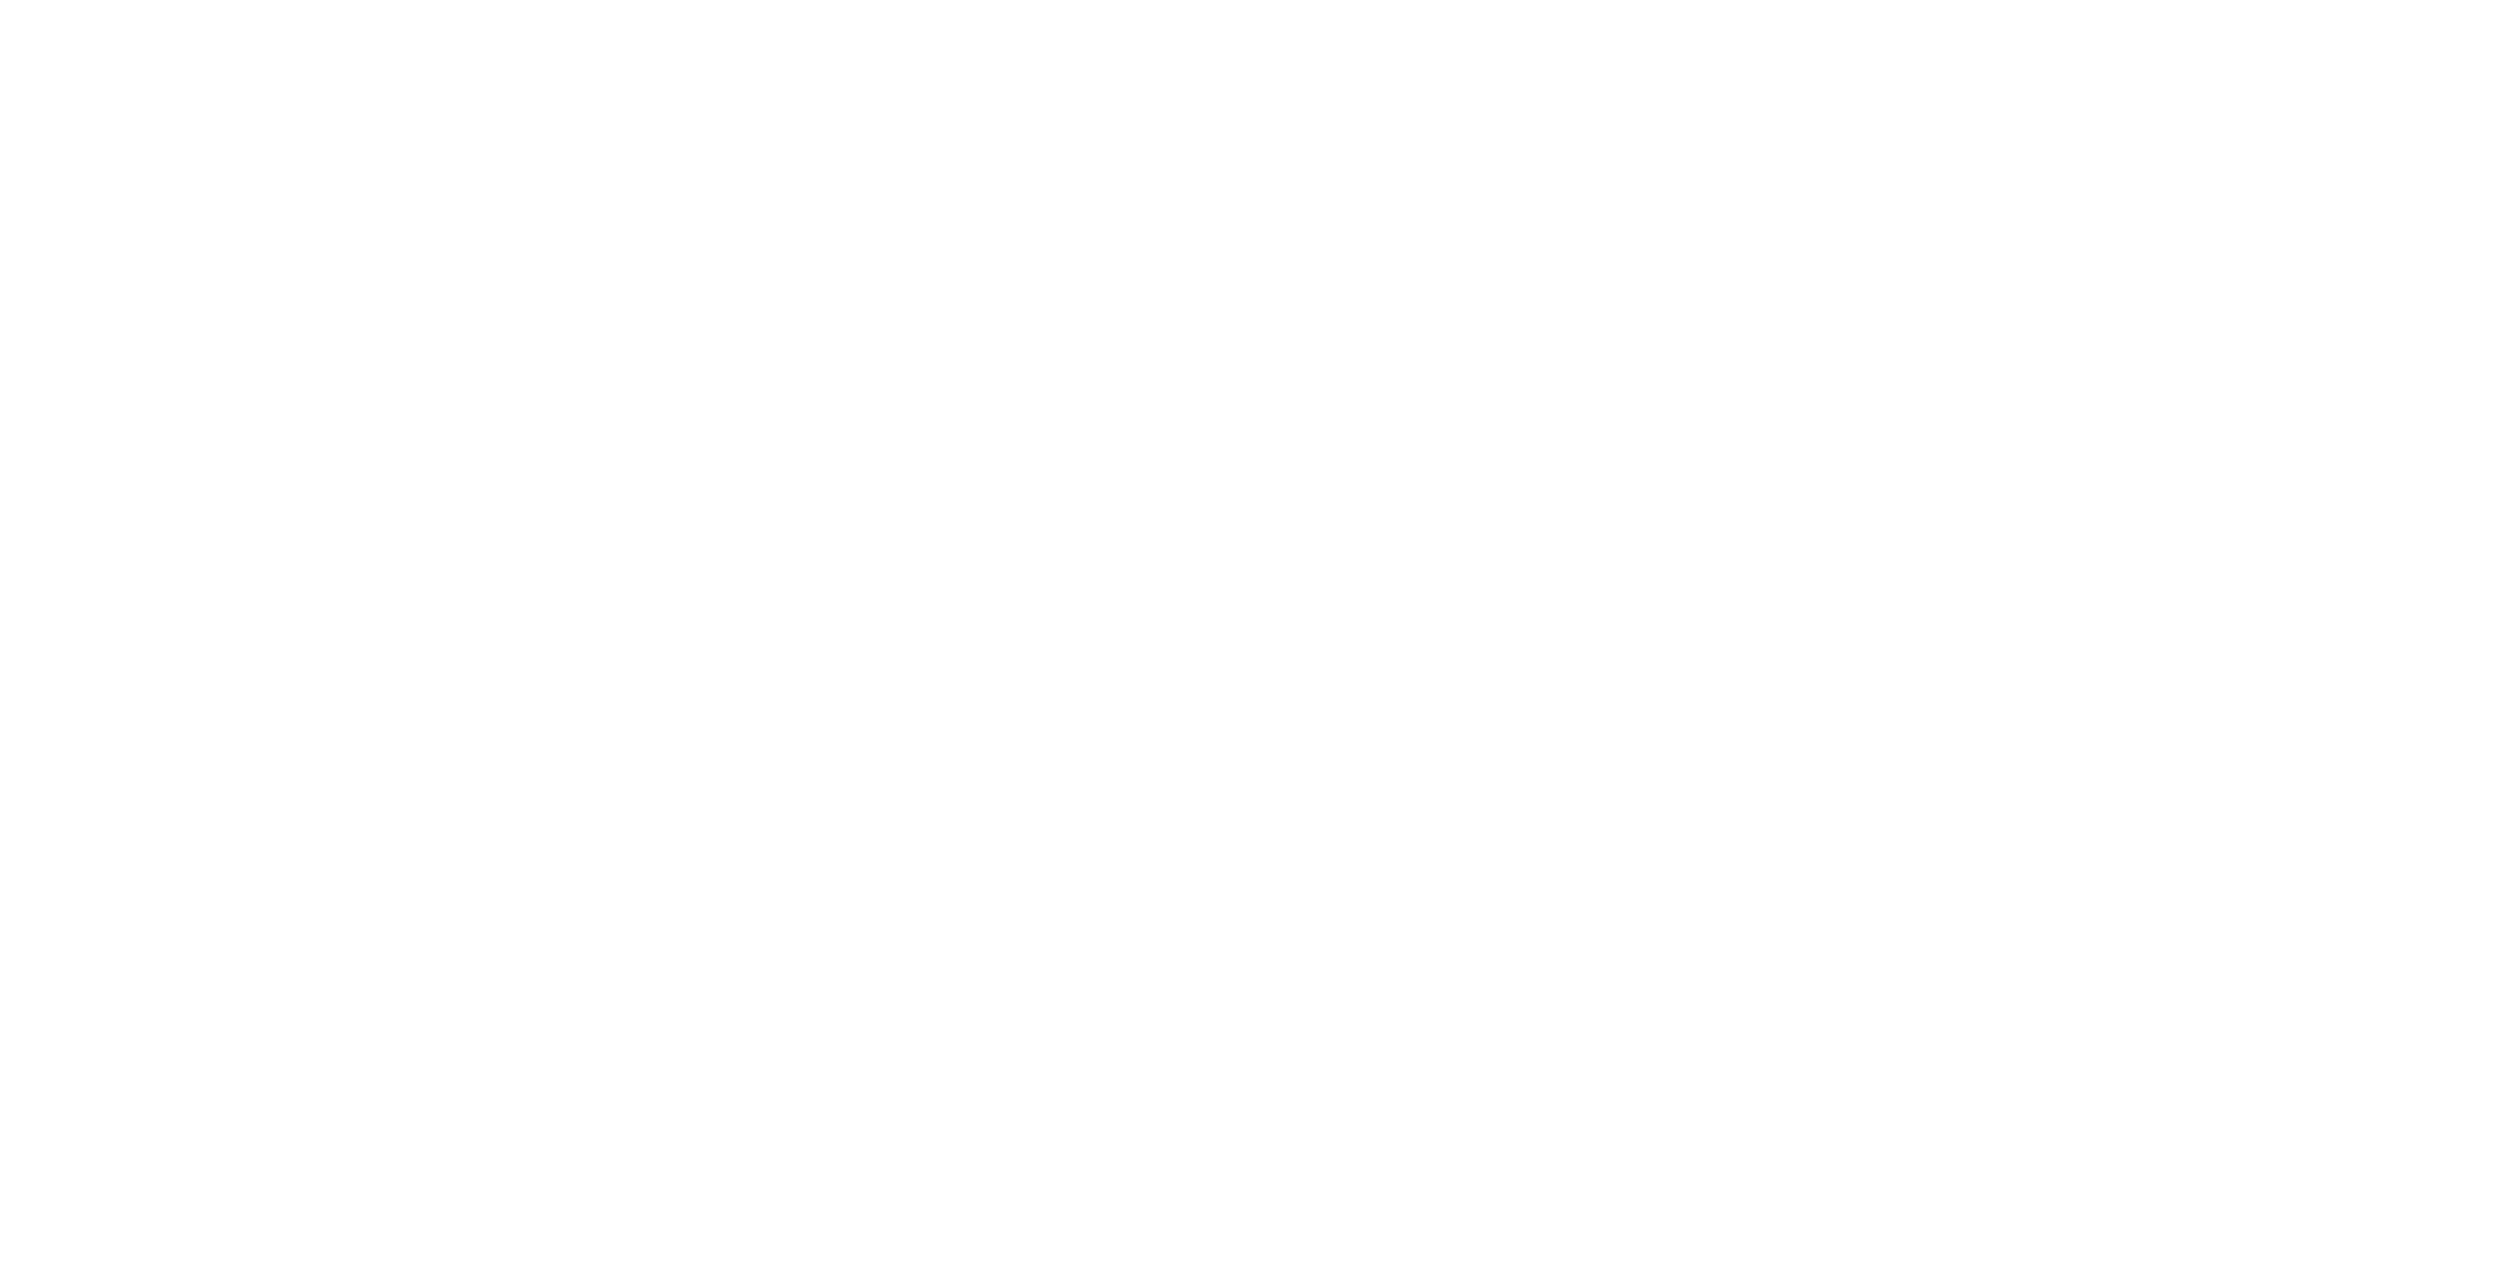 Official Selection White.png